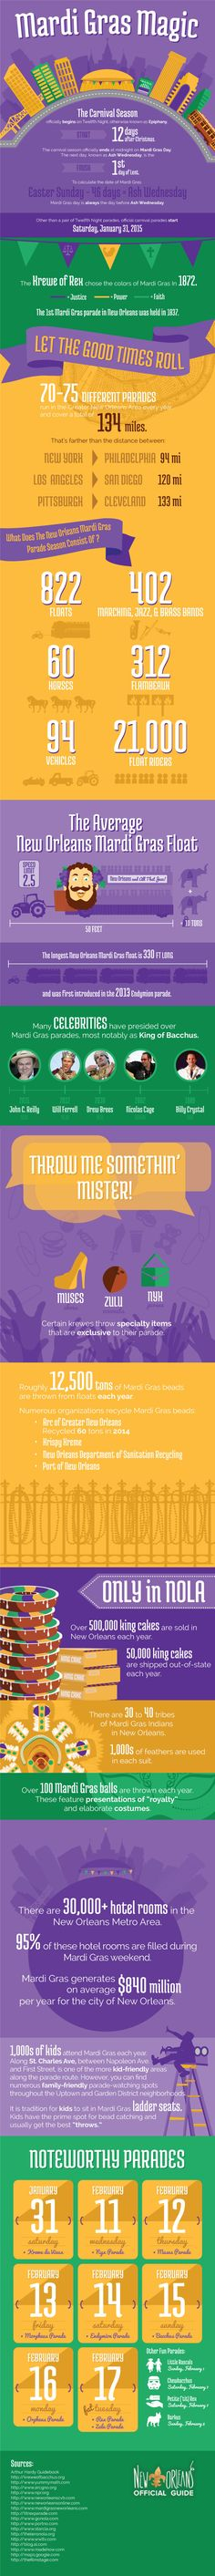 A Guide To New Orleans Mardi Gras Infographic - New Orleans Online